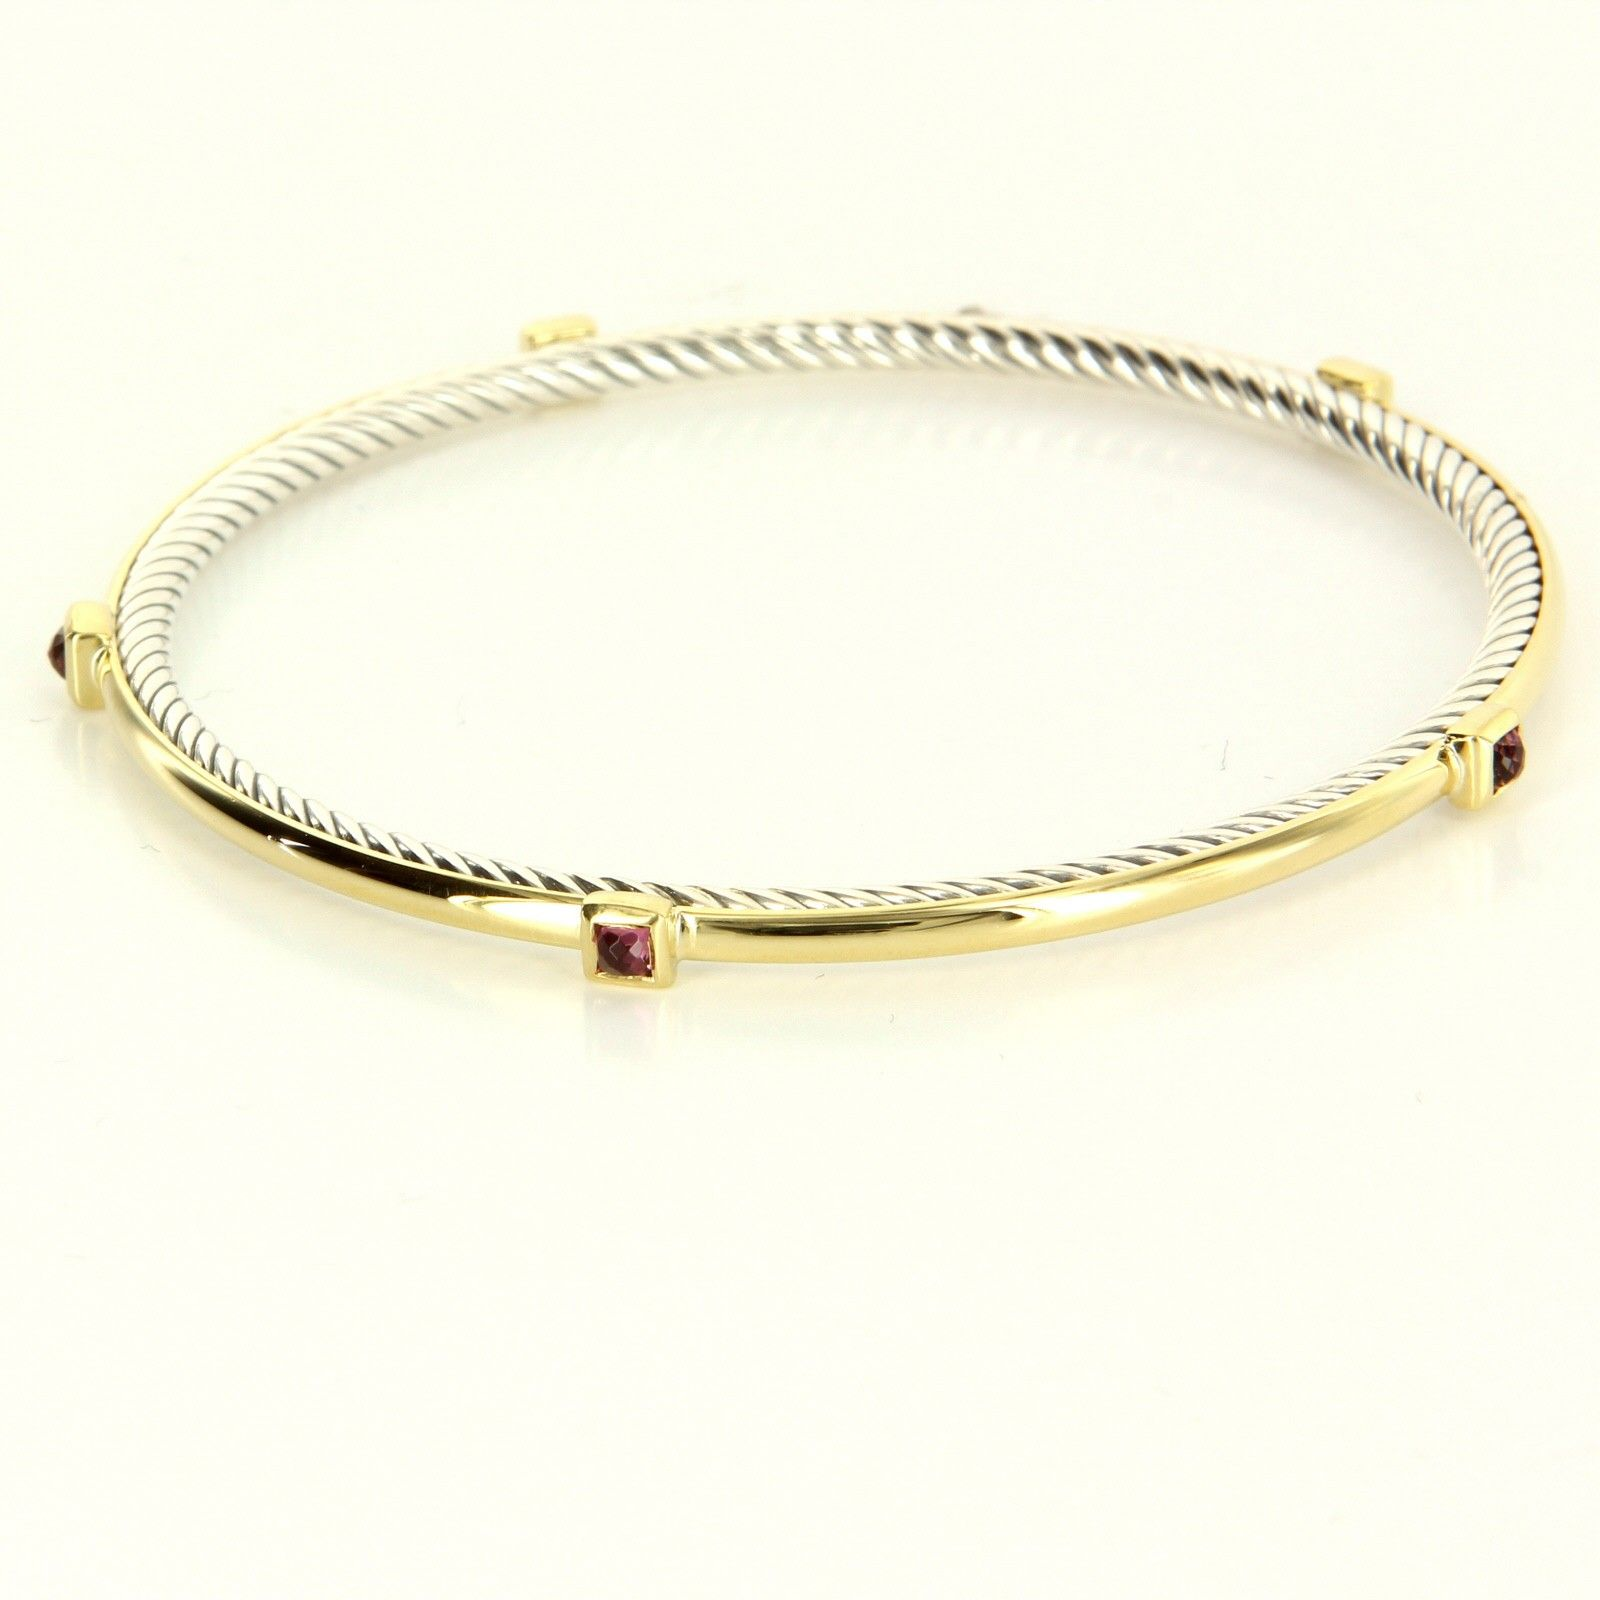 view in fullscreen bangles bracelet gold diamond metallic bangle jewelry brands silver white lyst gucci bamboo